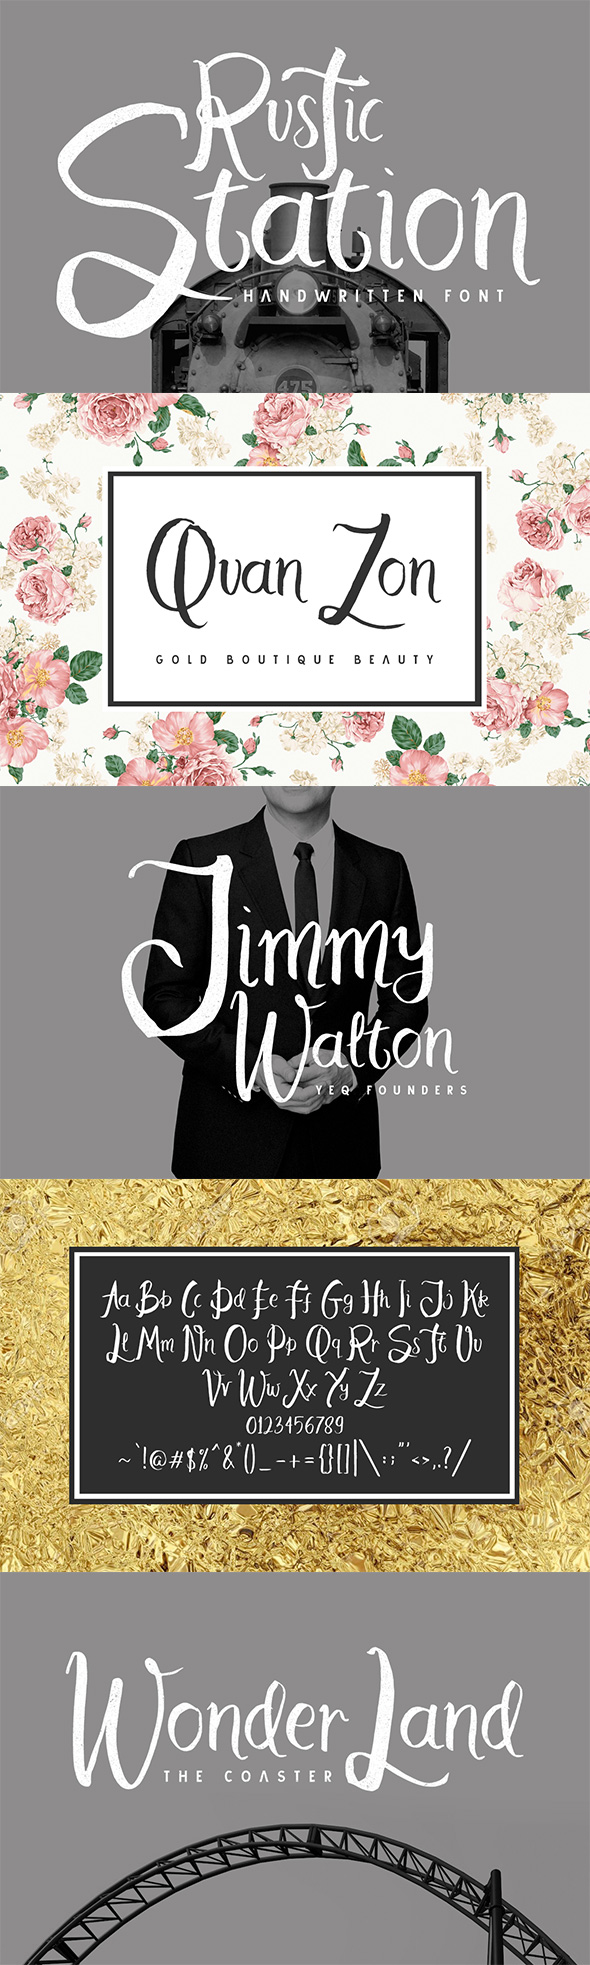 Free Font Rustic Station Typeface Download